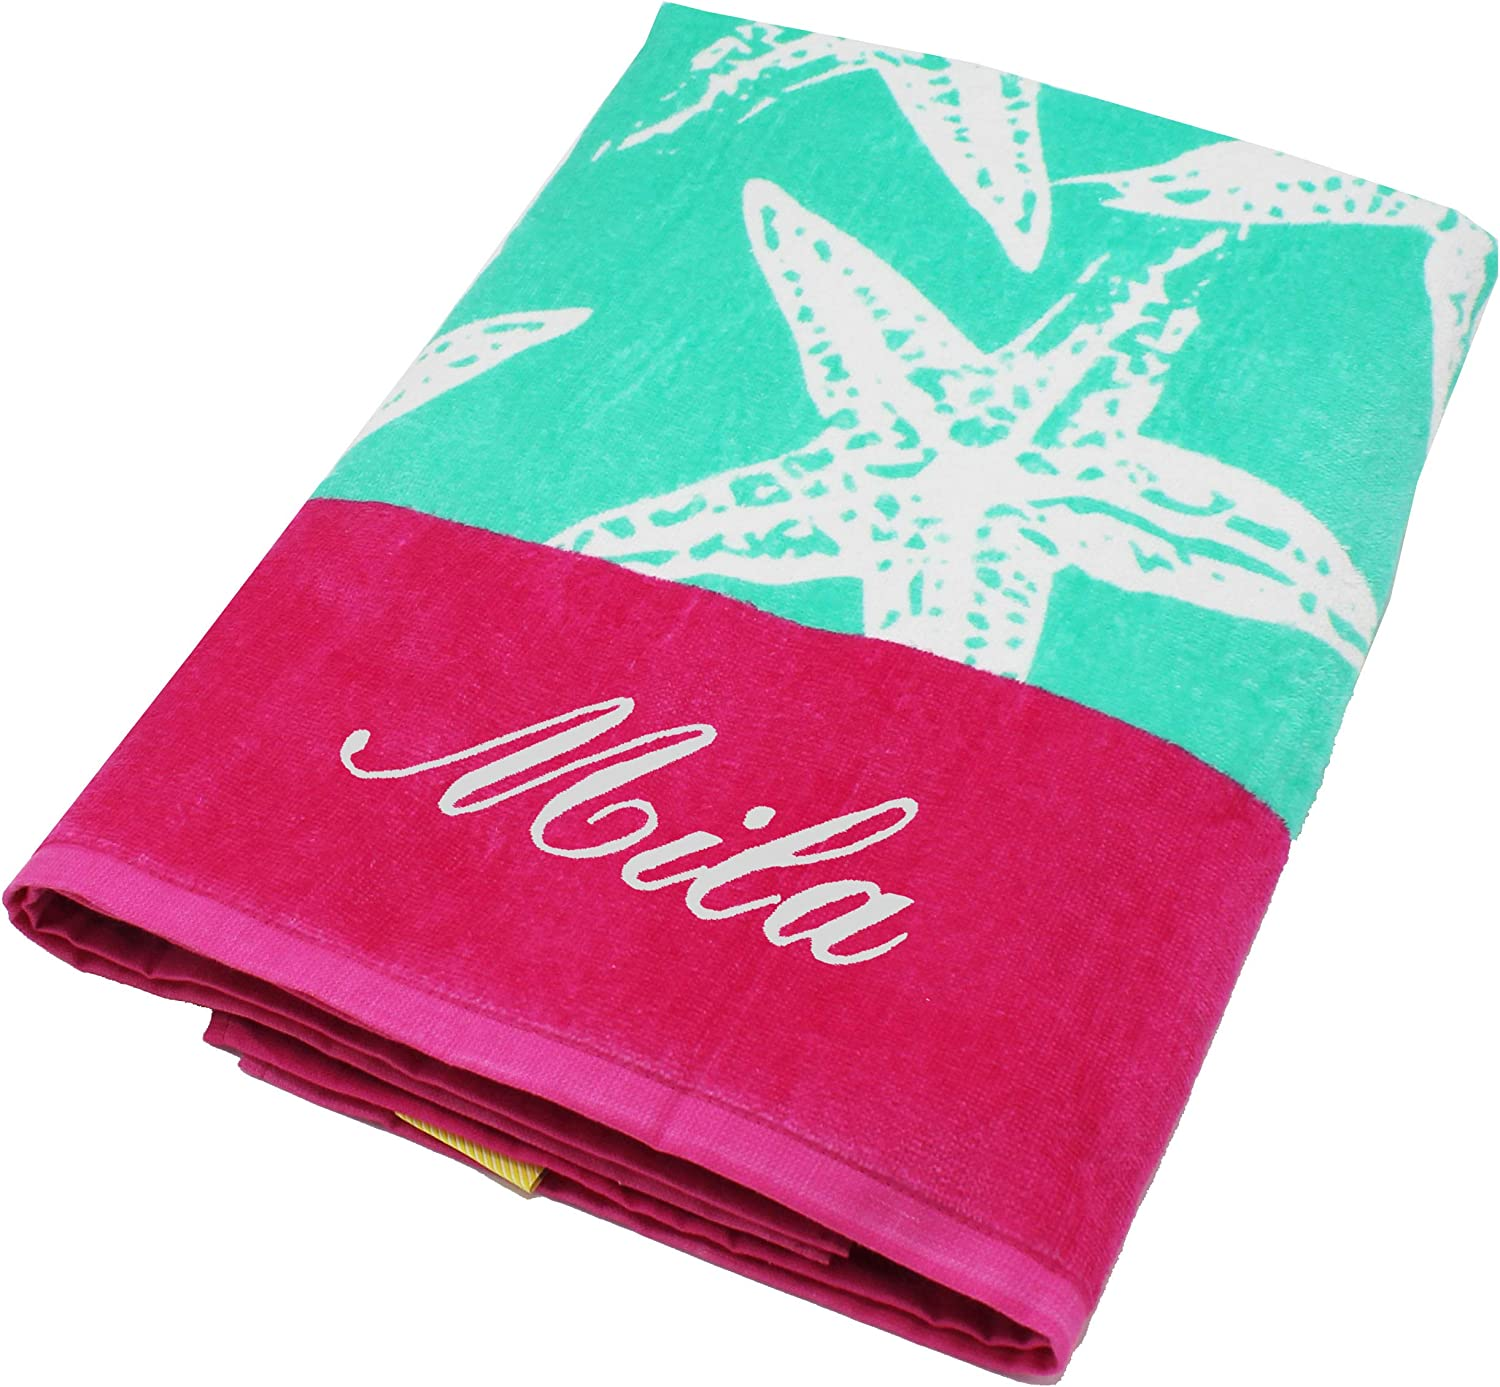 Personalized Beach Towels, Monogrammed Gifts for Kids, Her, Him, Custom Embroidered Towel